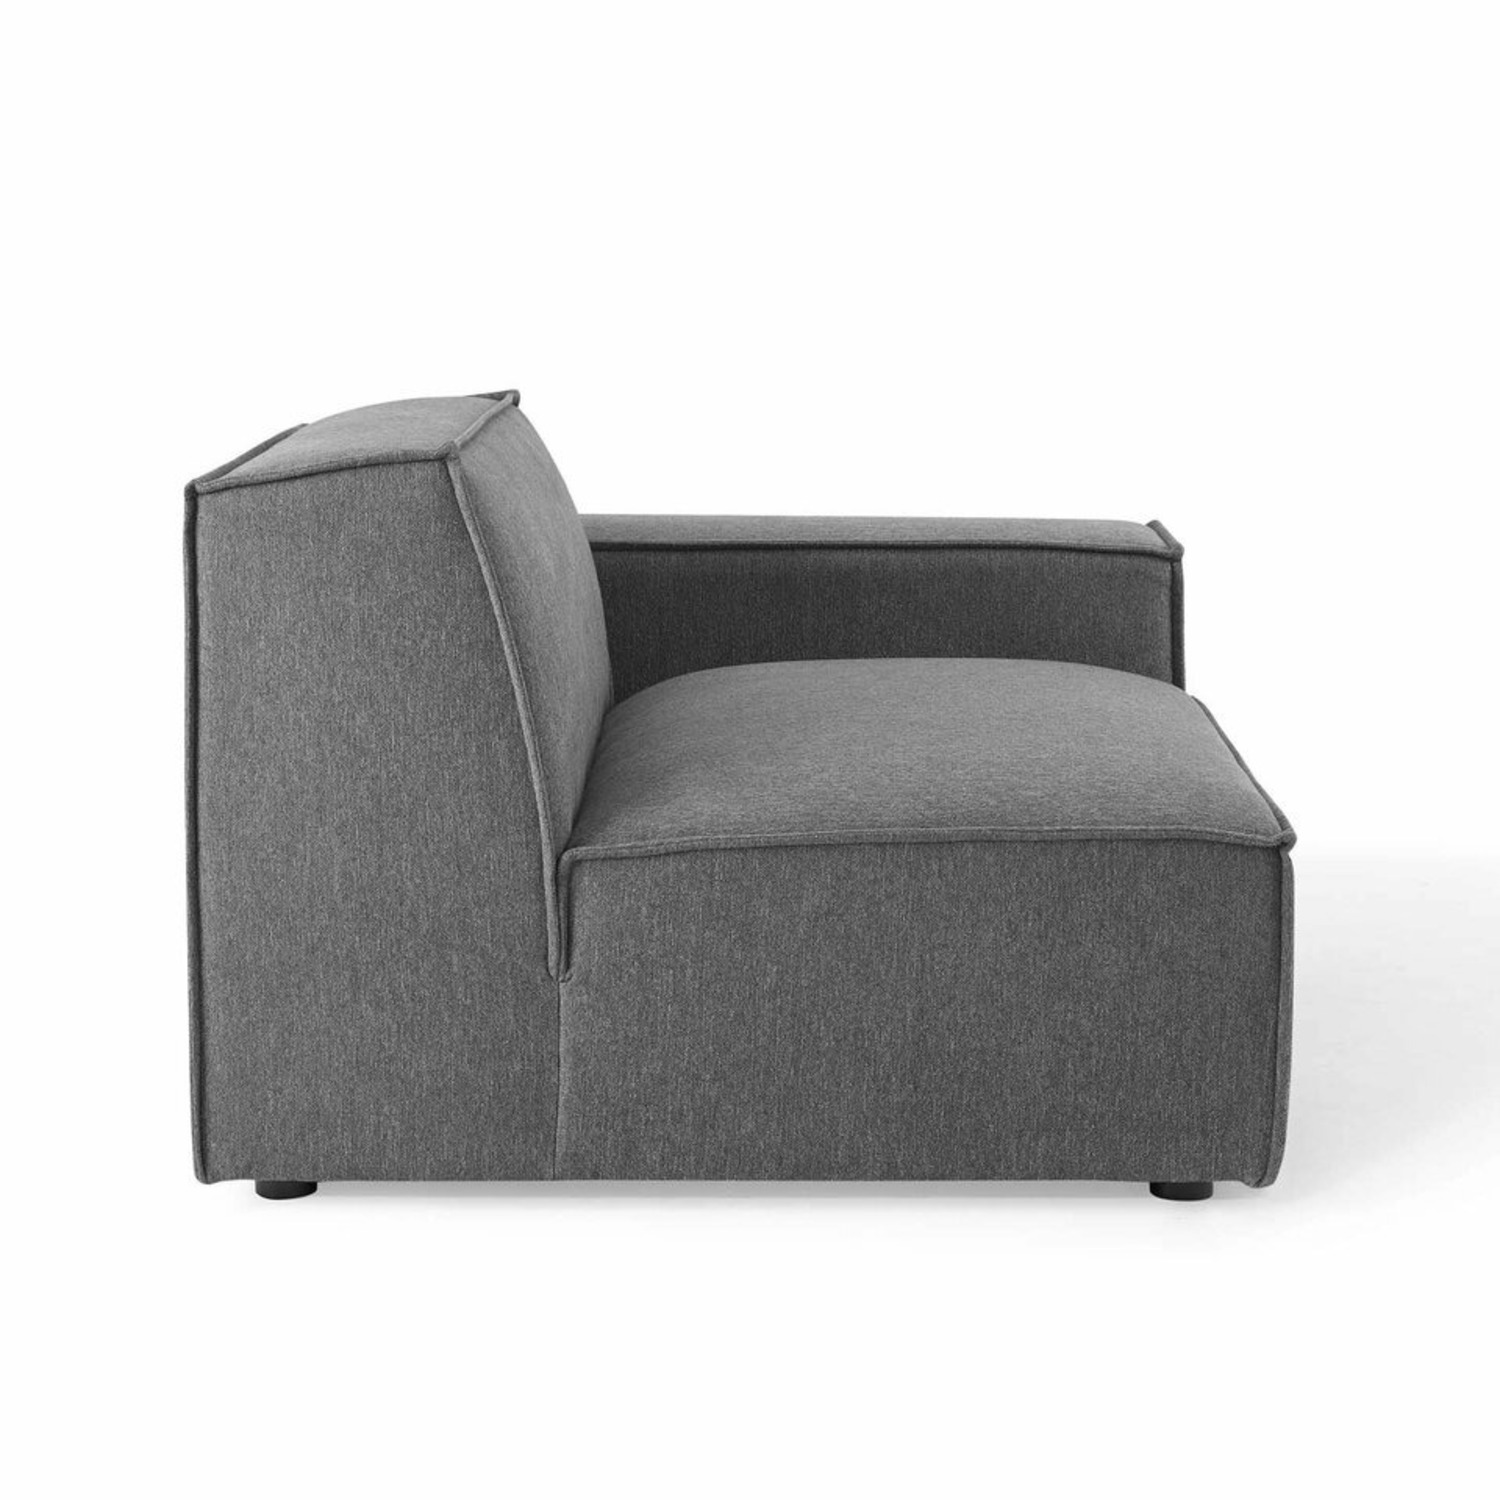 6-Piece Sectional Sofa In Charcoal Fabric - image-3